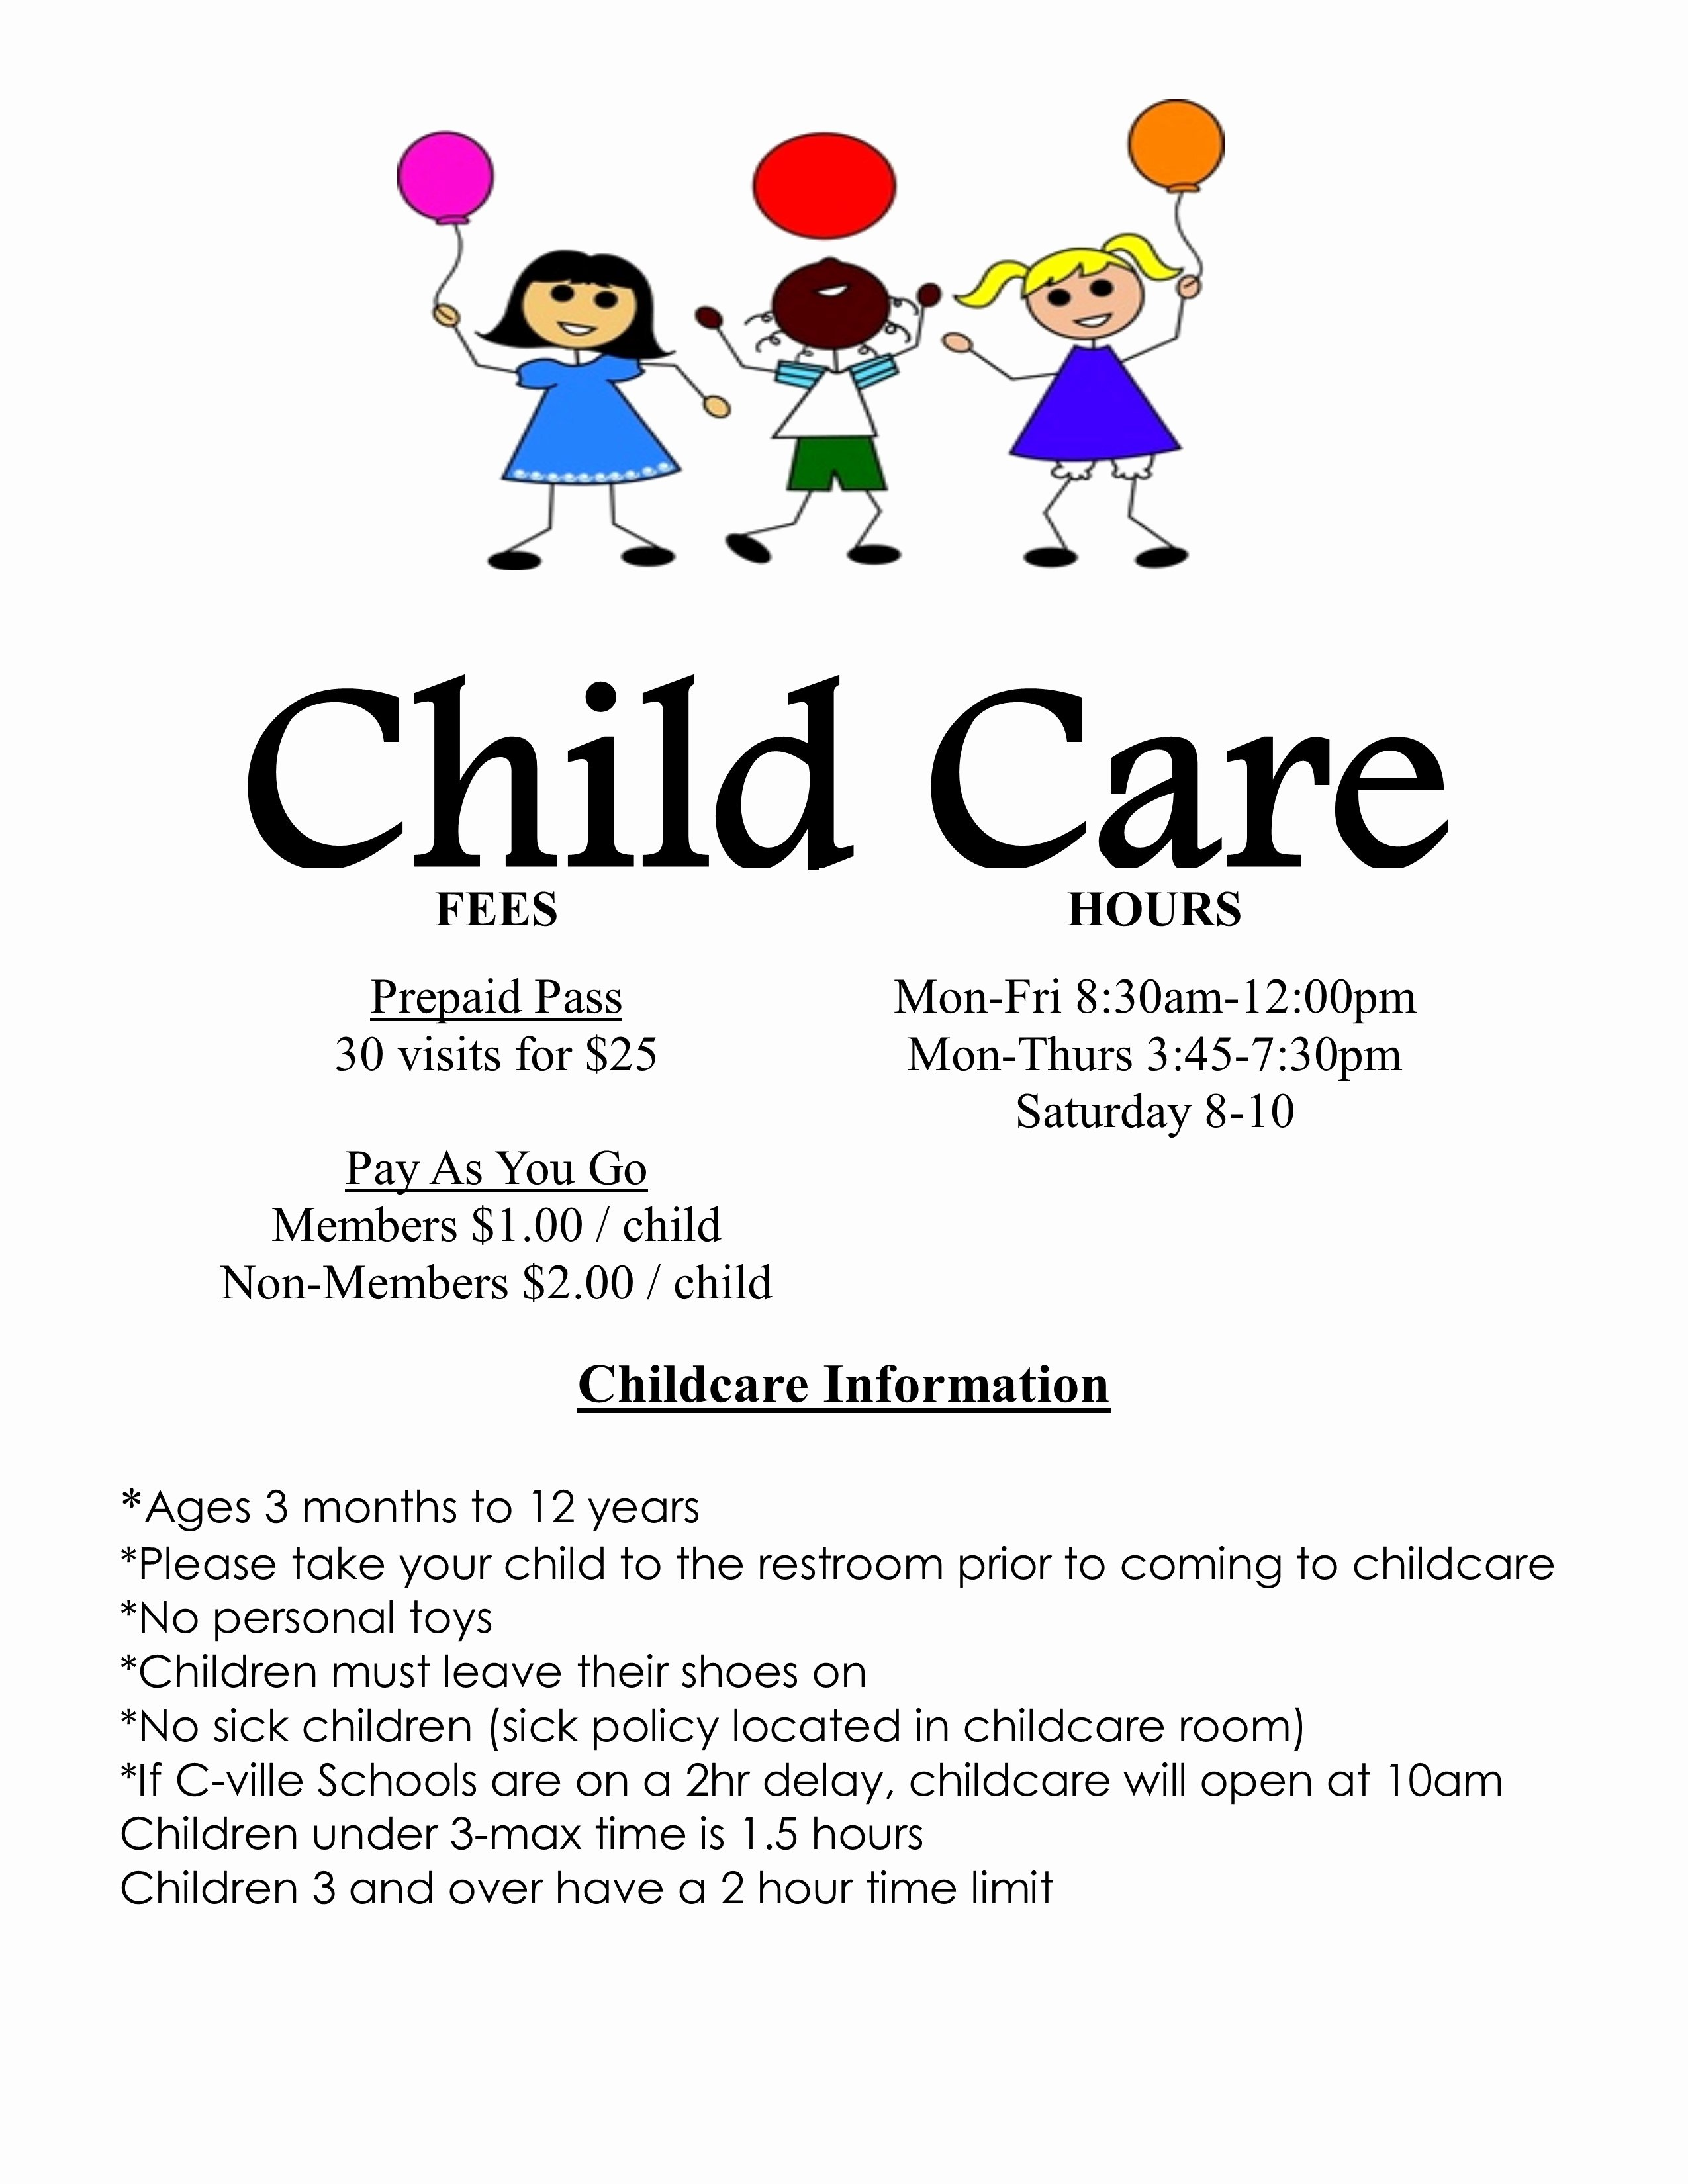 Child Care Flyers Templates New Child Care Flyers Examples